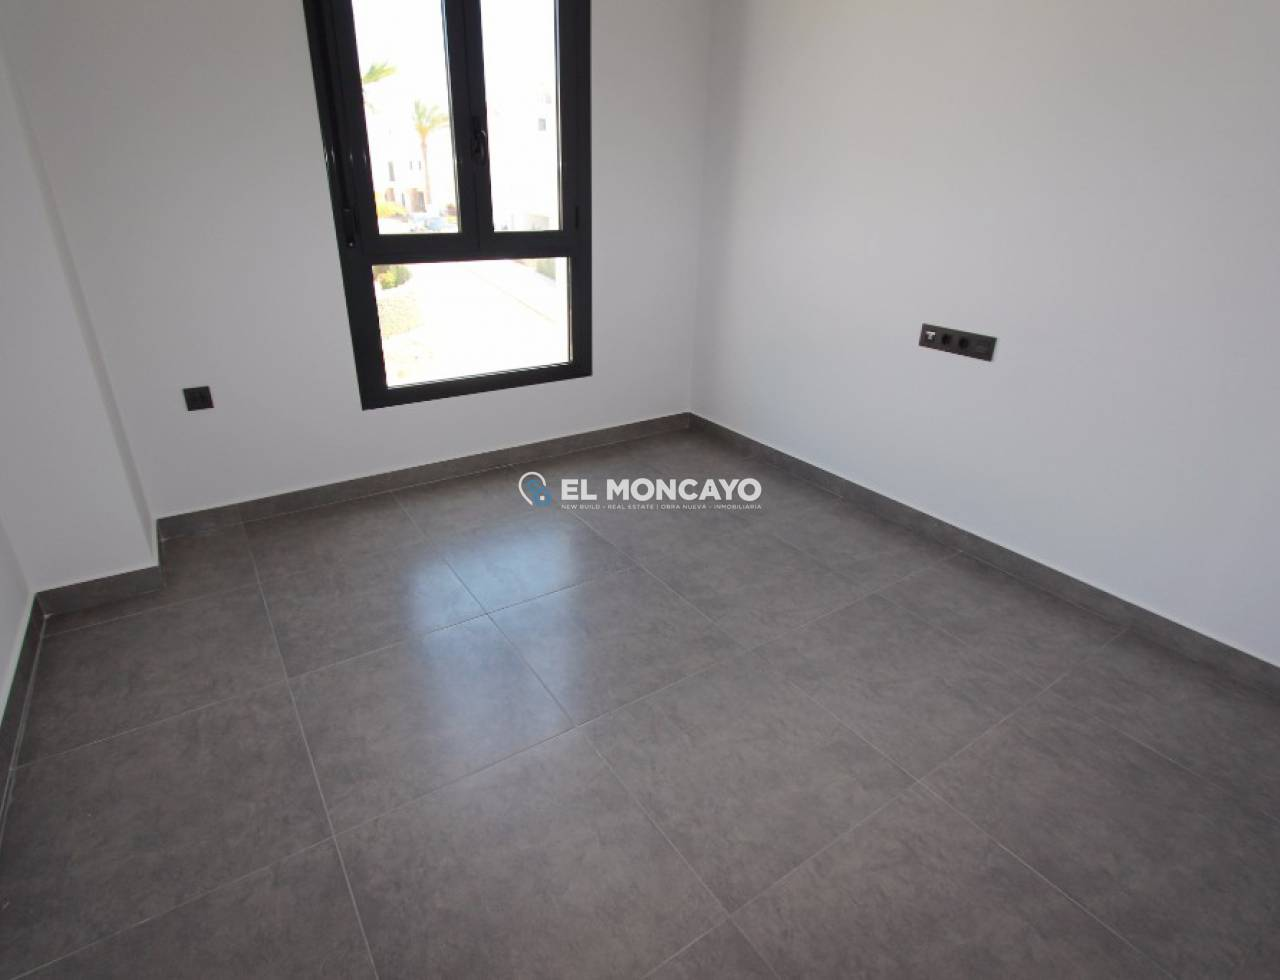 Penthouse duplex in Villamartín - Orihuela Costa (Costa Blanca South) 119 (12)